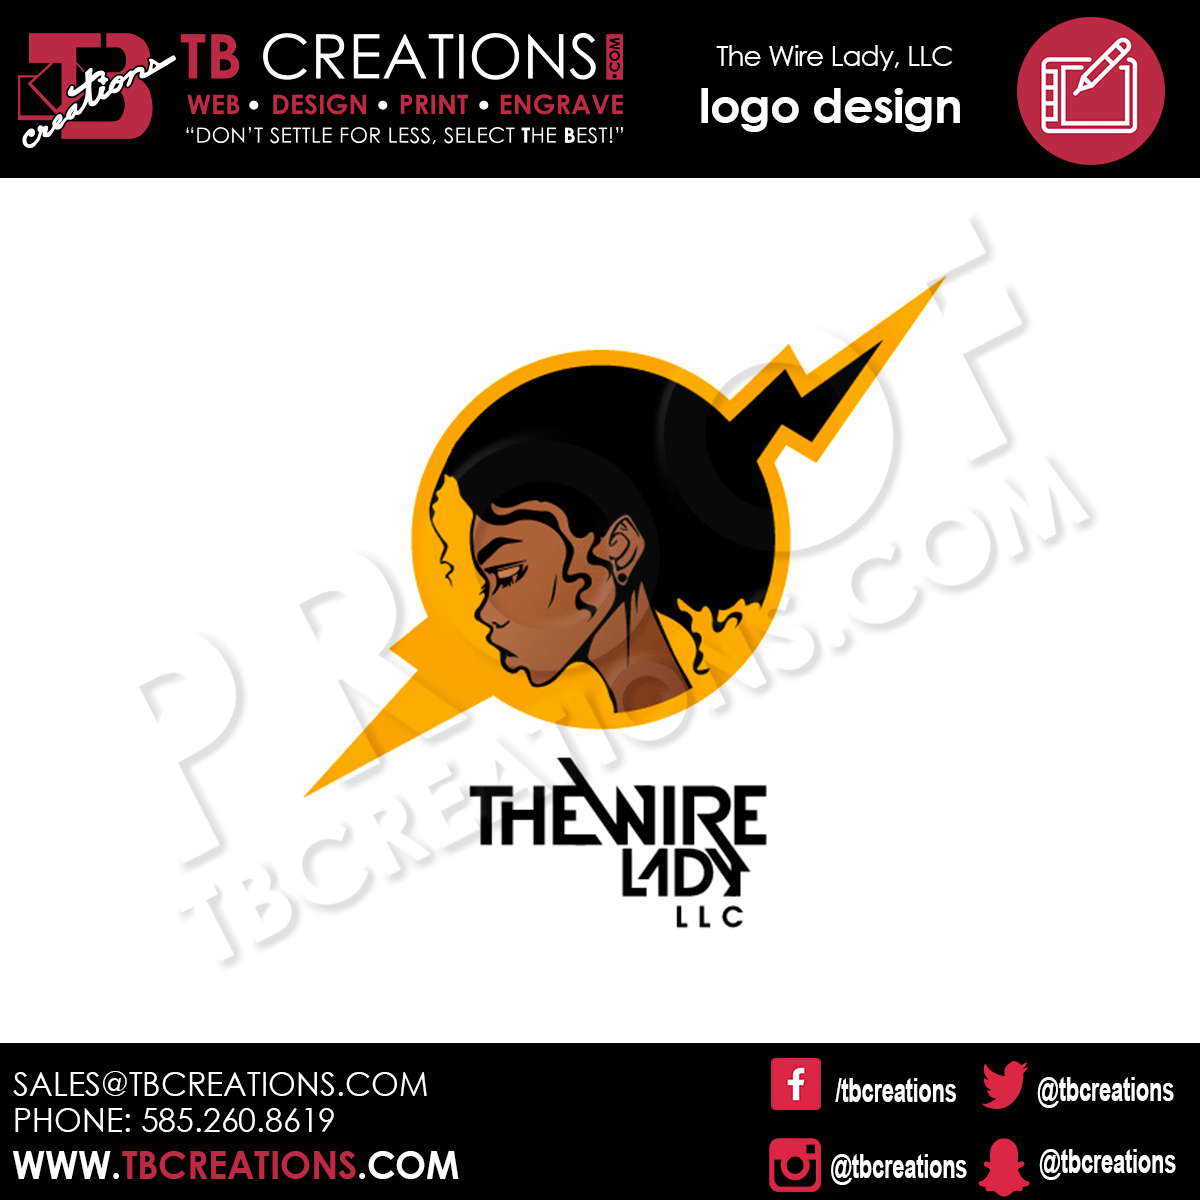 The Wire Lady, LLC